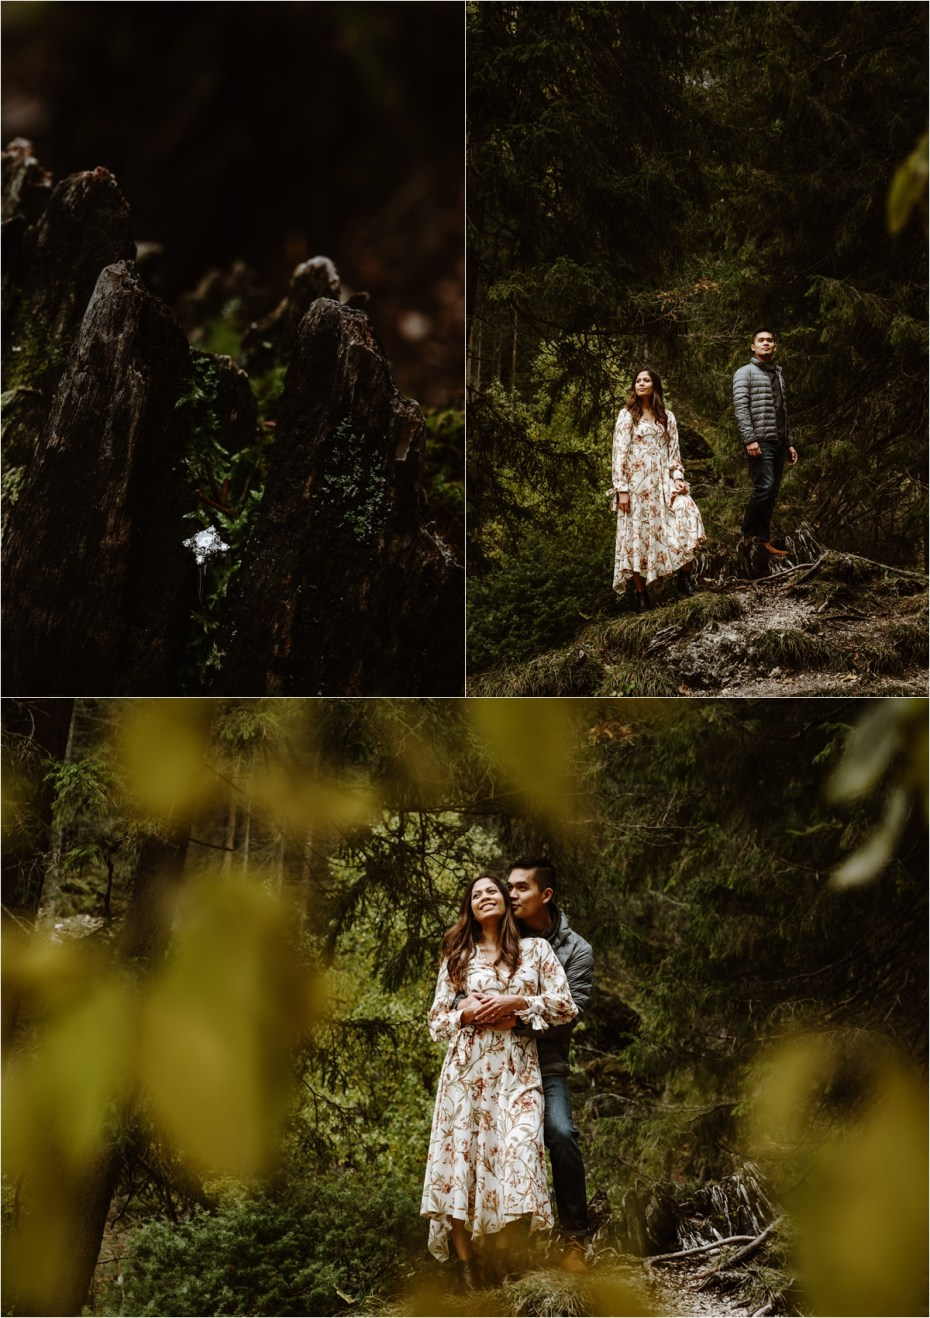 Engagement photos in the forest around Lago di Braies in the Dolomites. Photos by Wild Connections Photography.